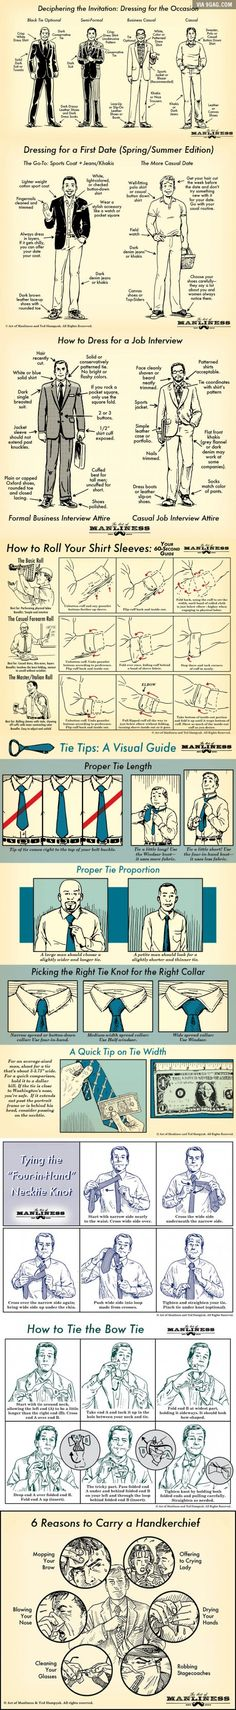 Let's Dress Manly - Mens Style Guide by Art of Manliness visual tips and guides all connected